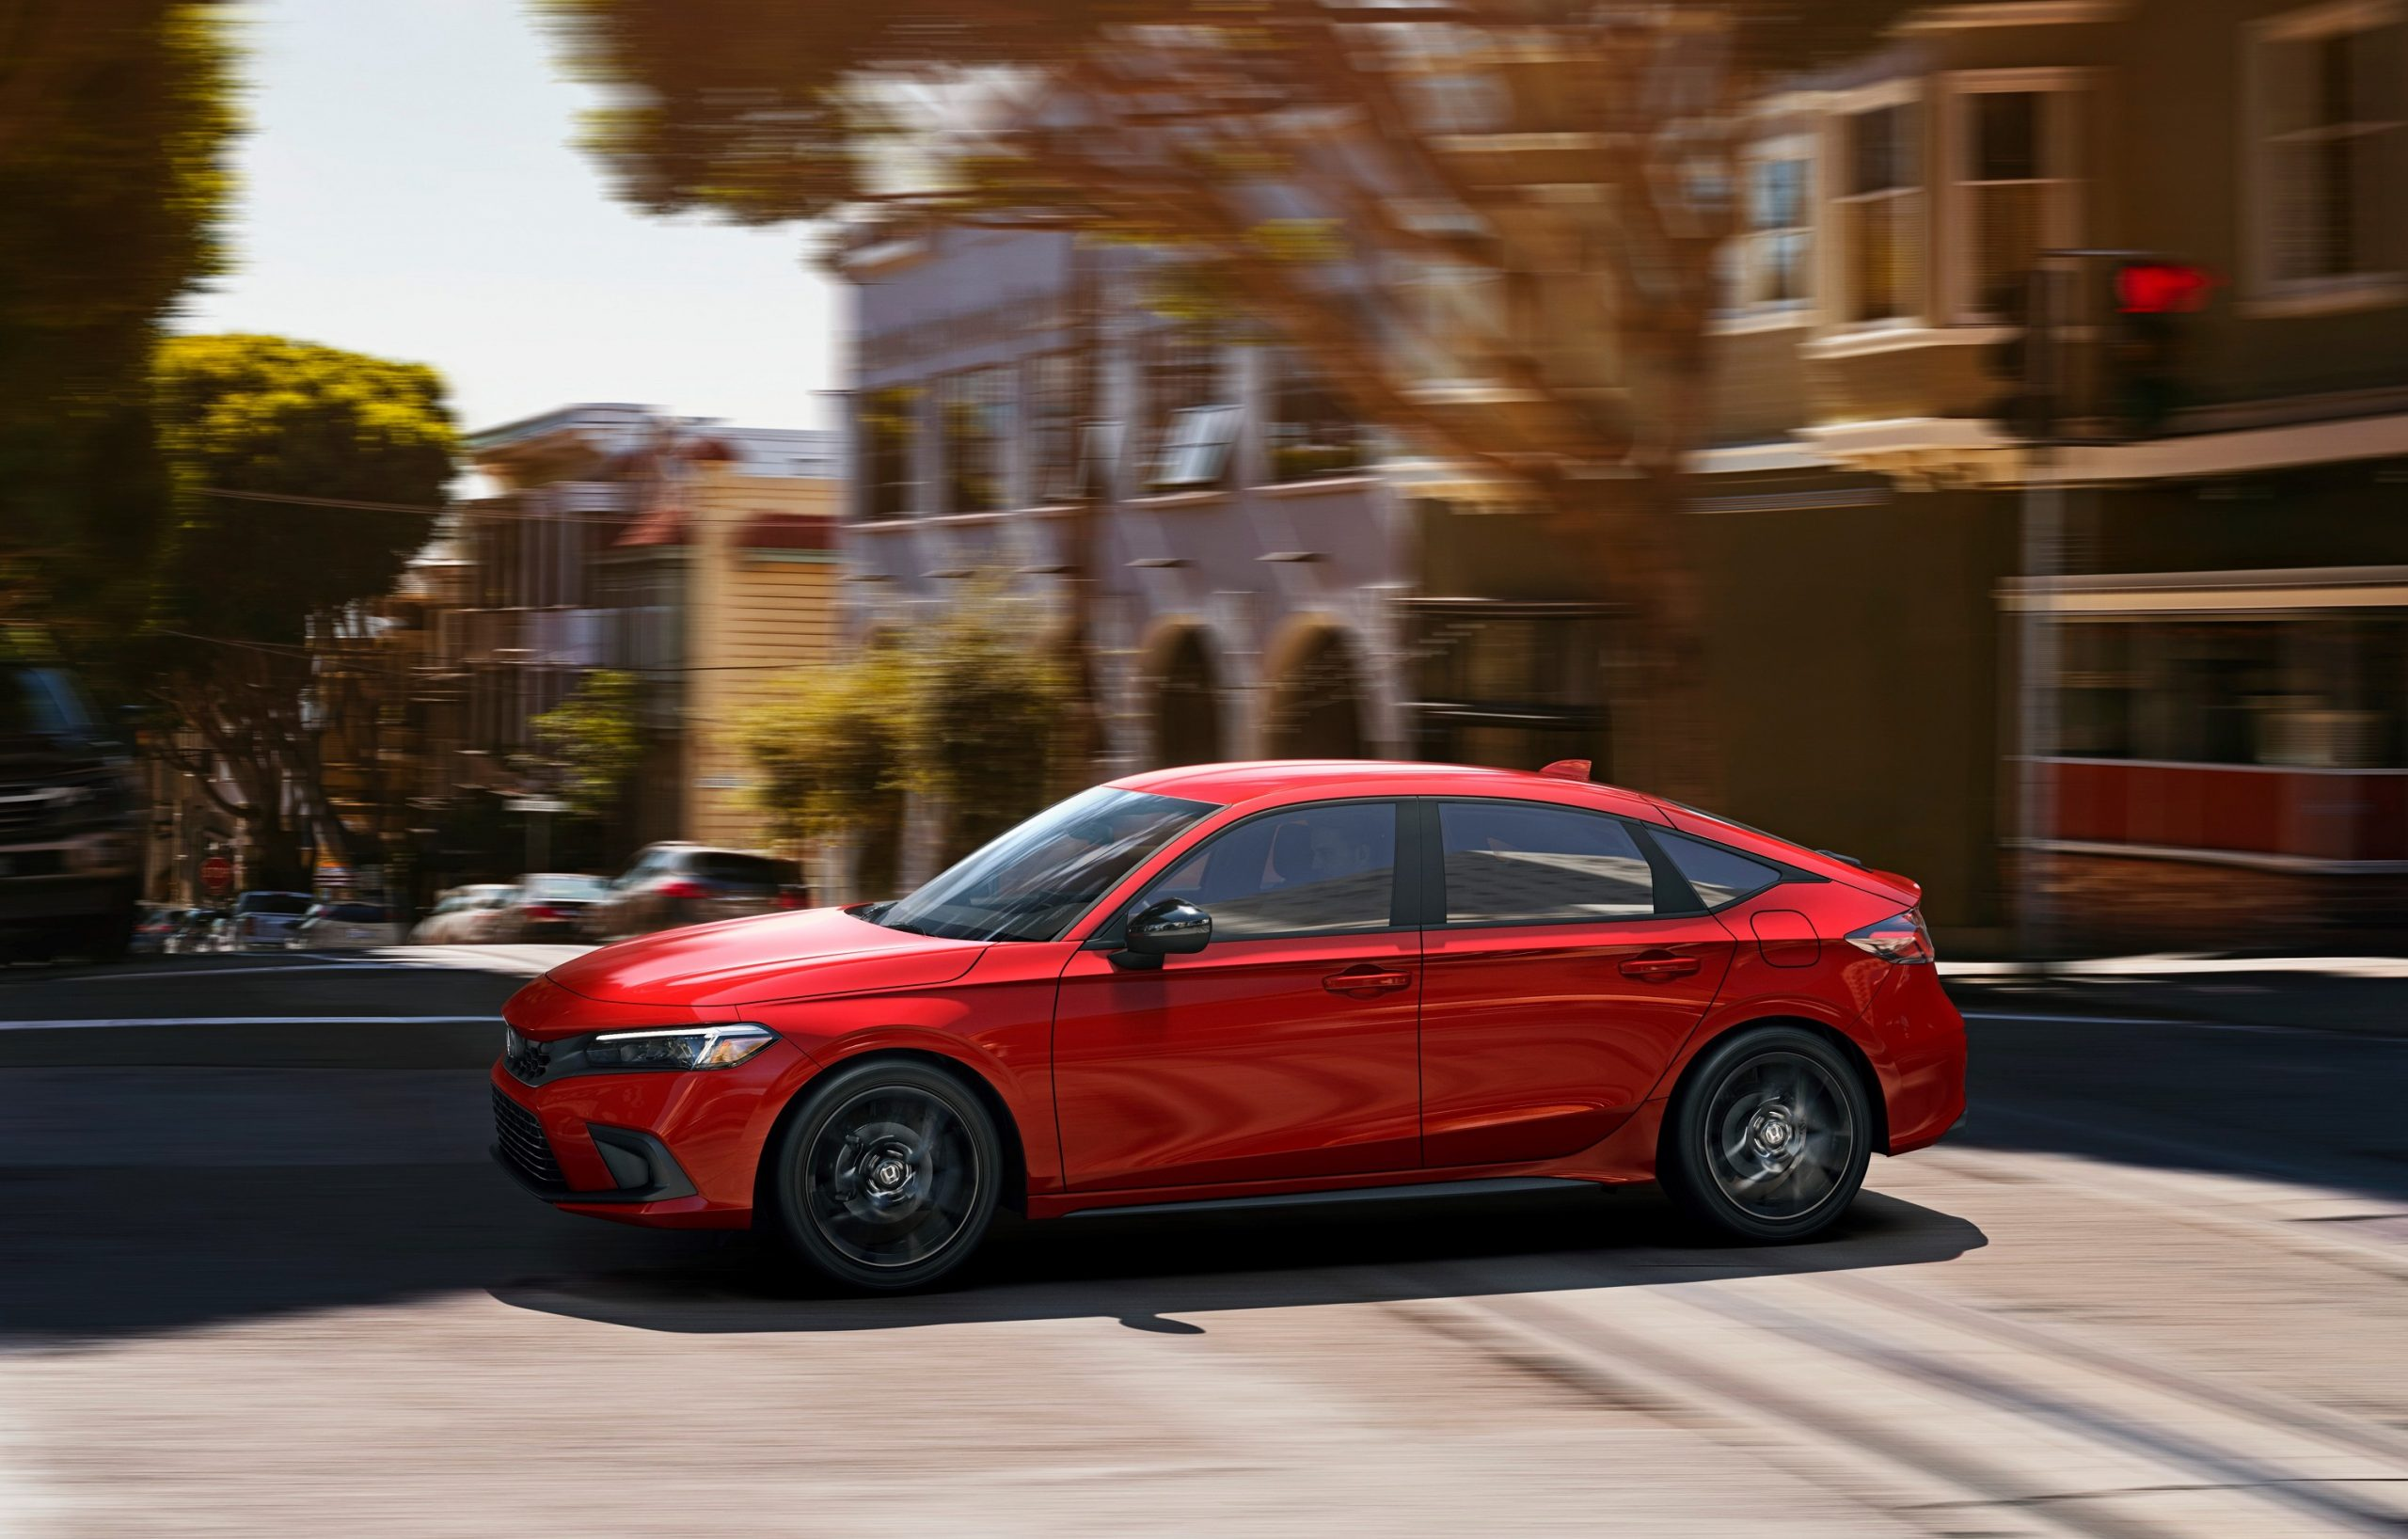 A red 2022 Honda Civic, which the 2022 Acura Integra is based on, hatchback shot in profile on a city street